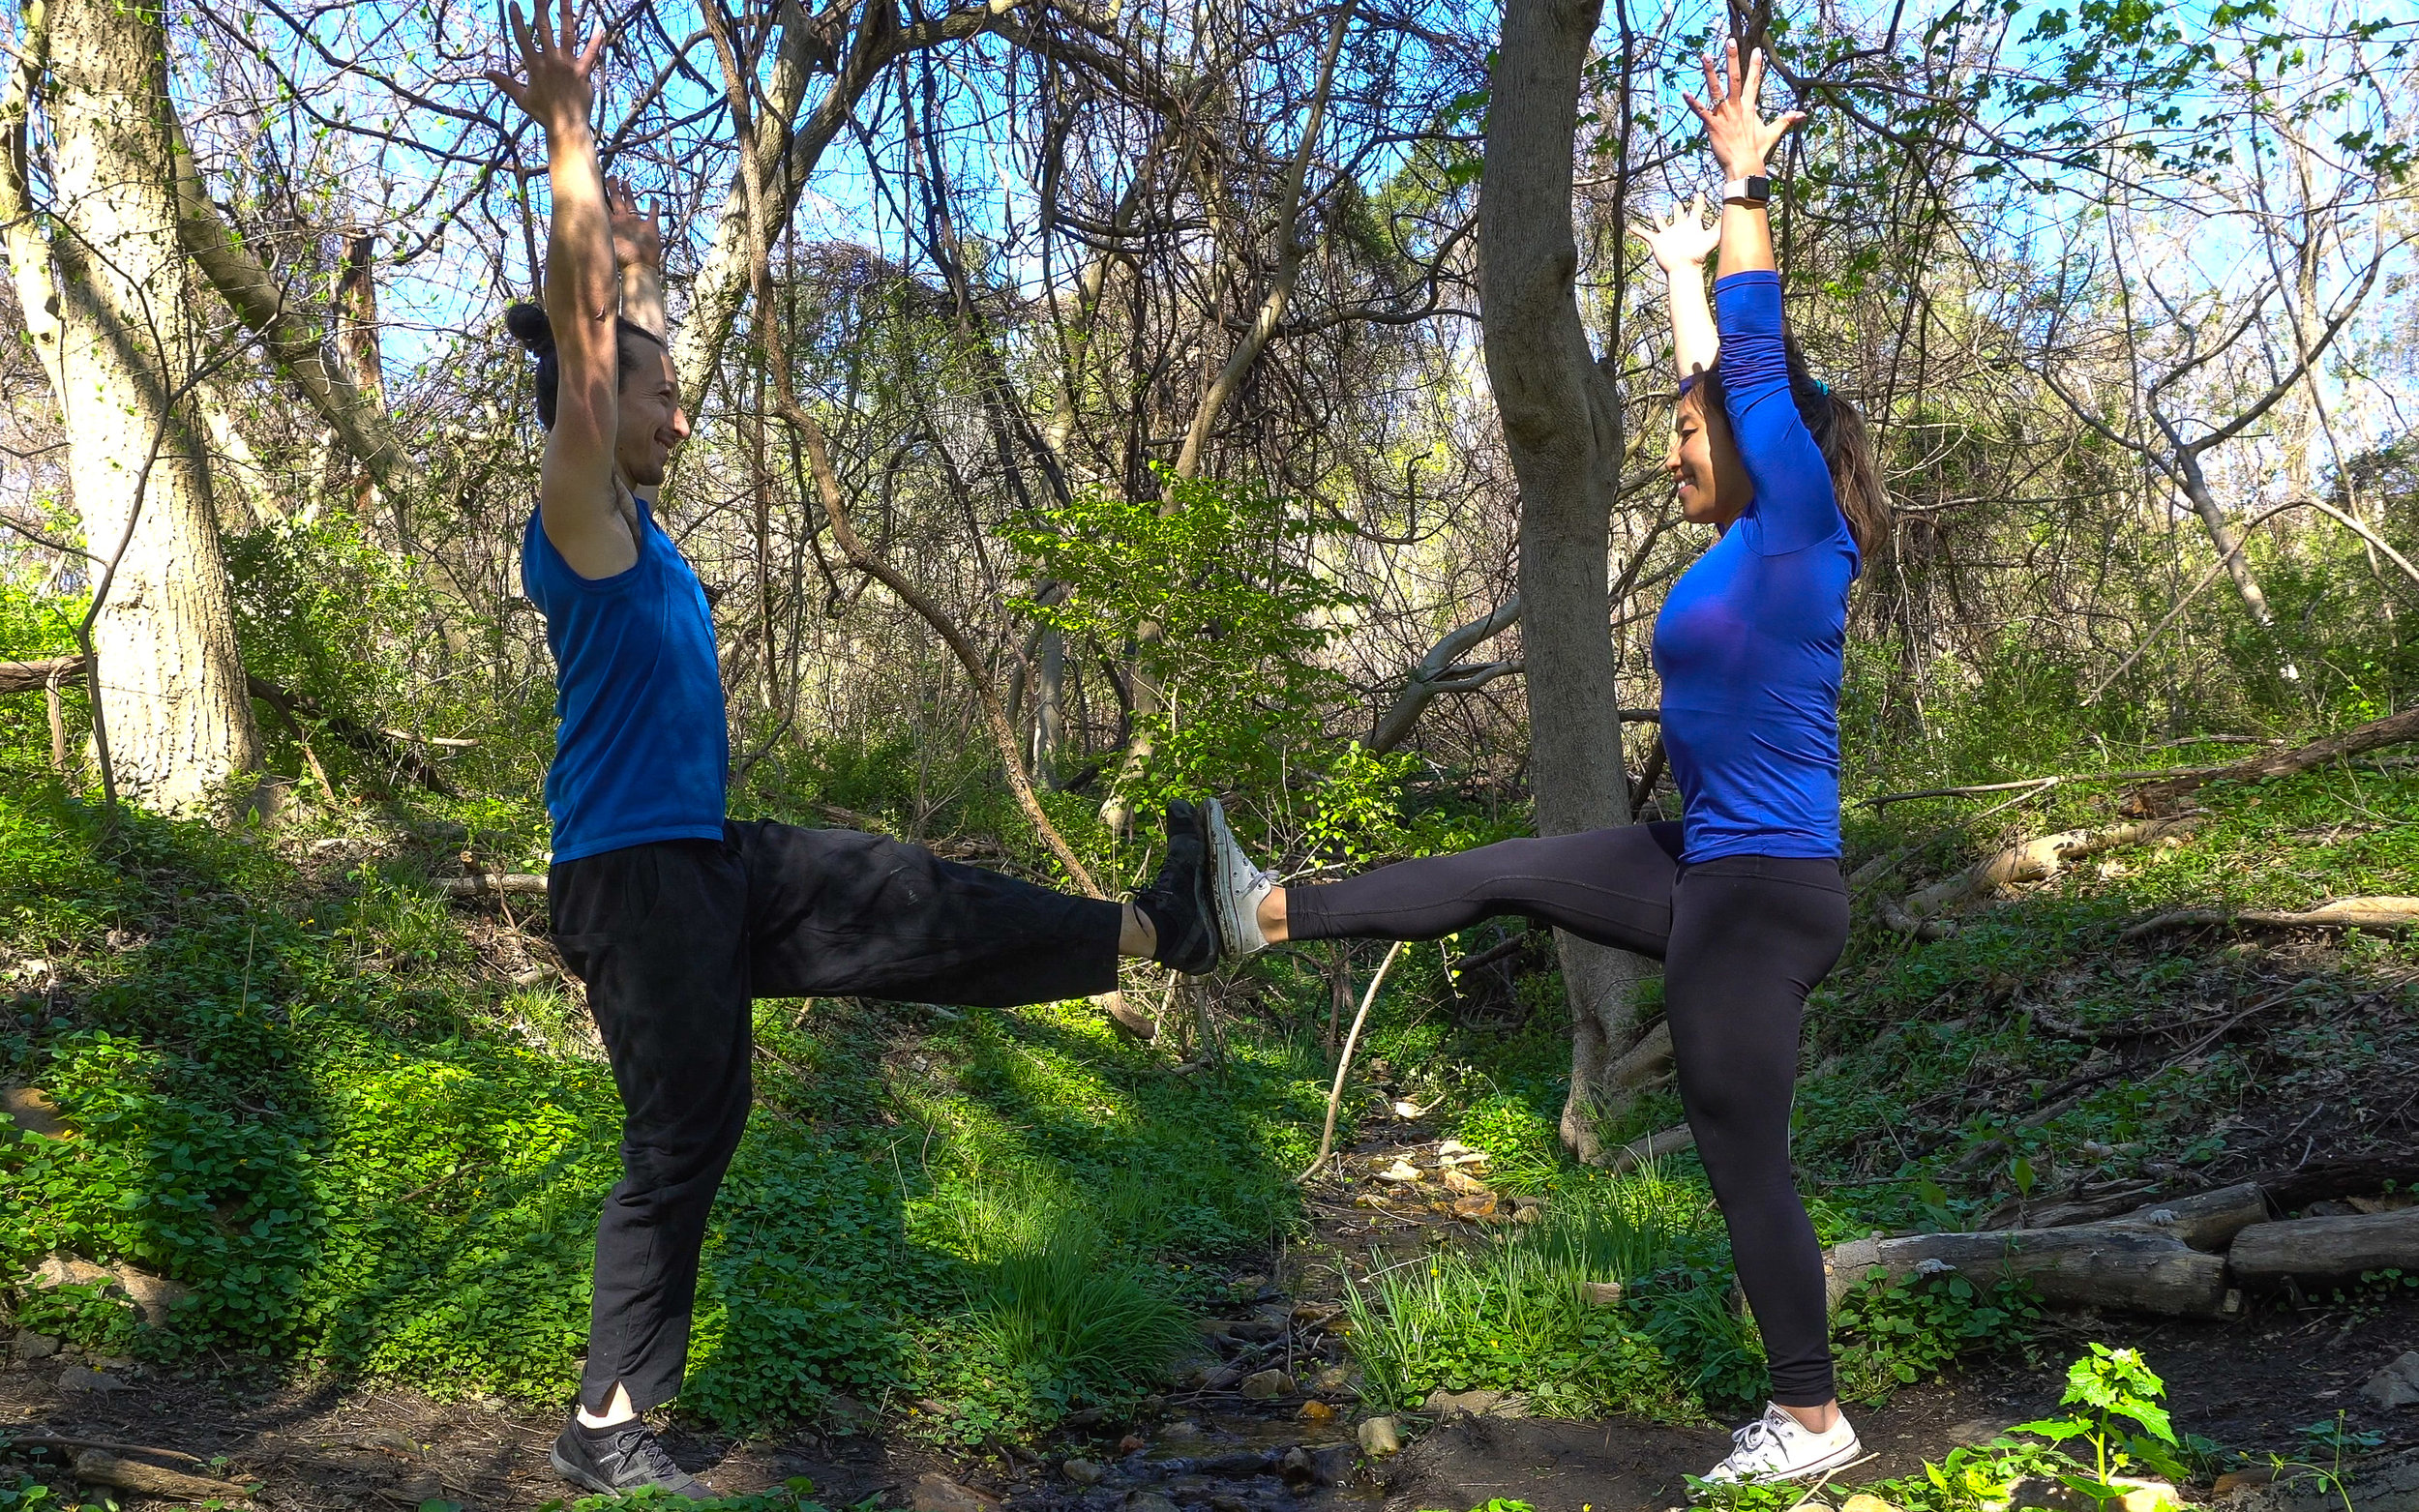 Jung and Emile (pictured above) will be leading you through energizing yoga classes. Jessica will guide creative art making sessions designed to facilitate personal processing and reflection.